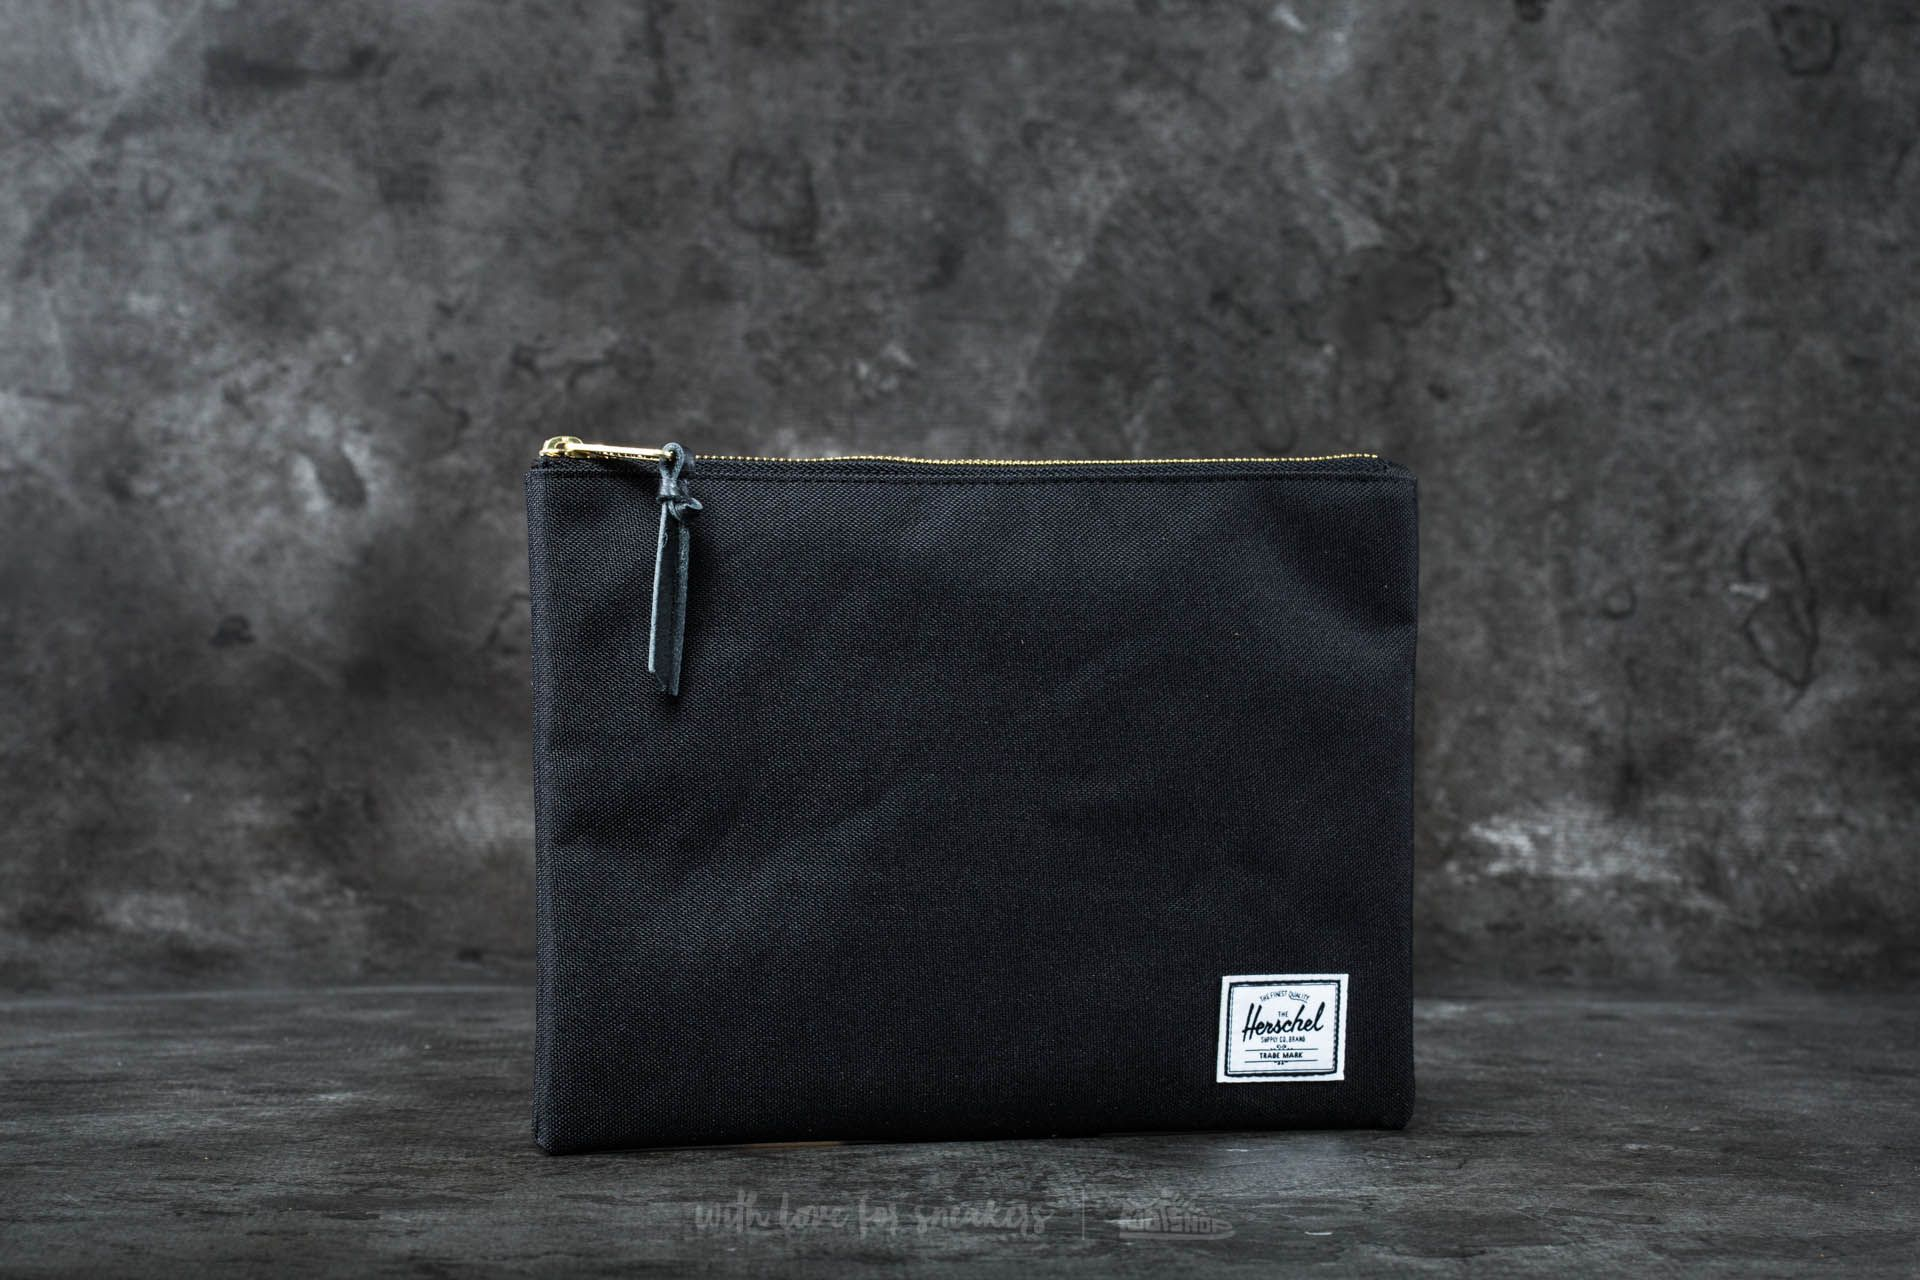 Herschel Supply Co. Network Pouch Black - 16522